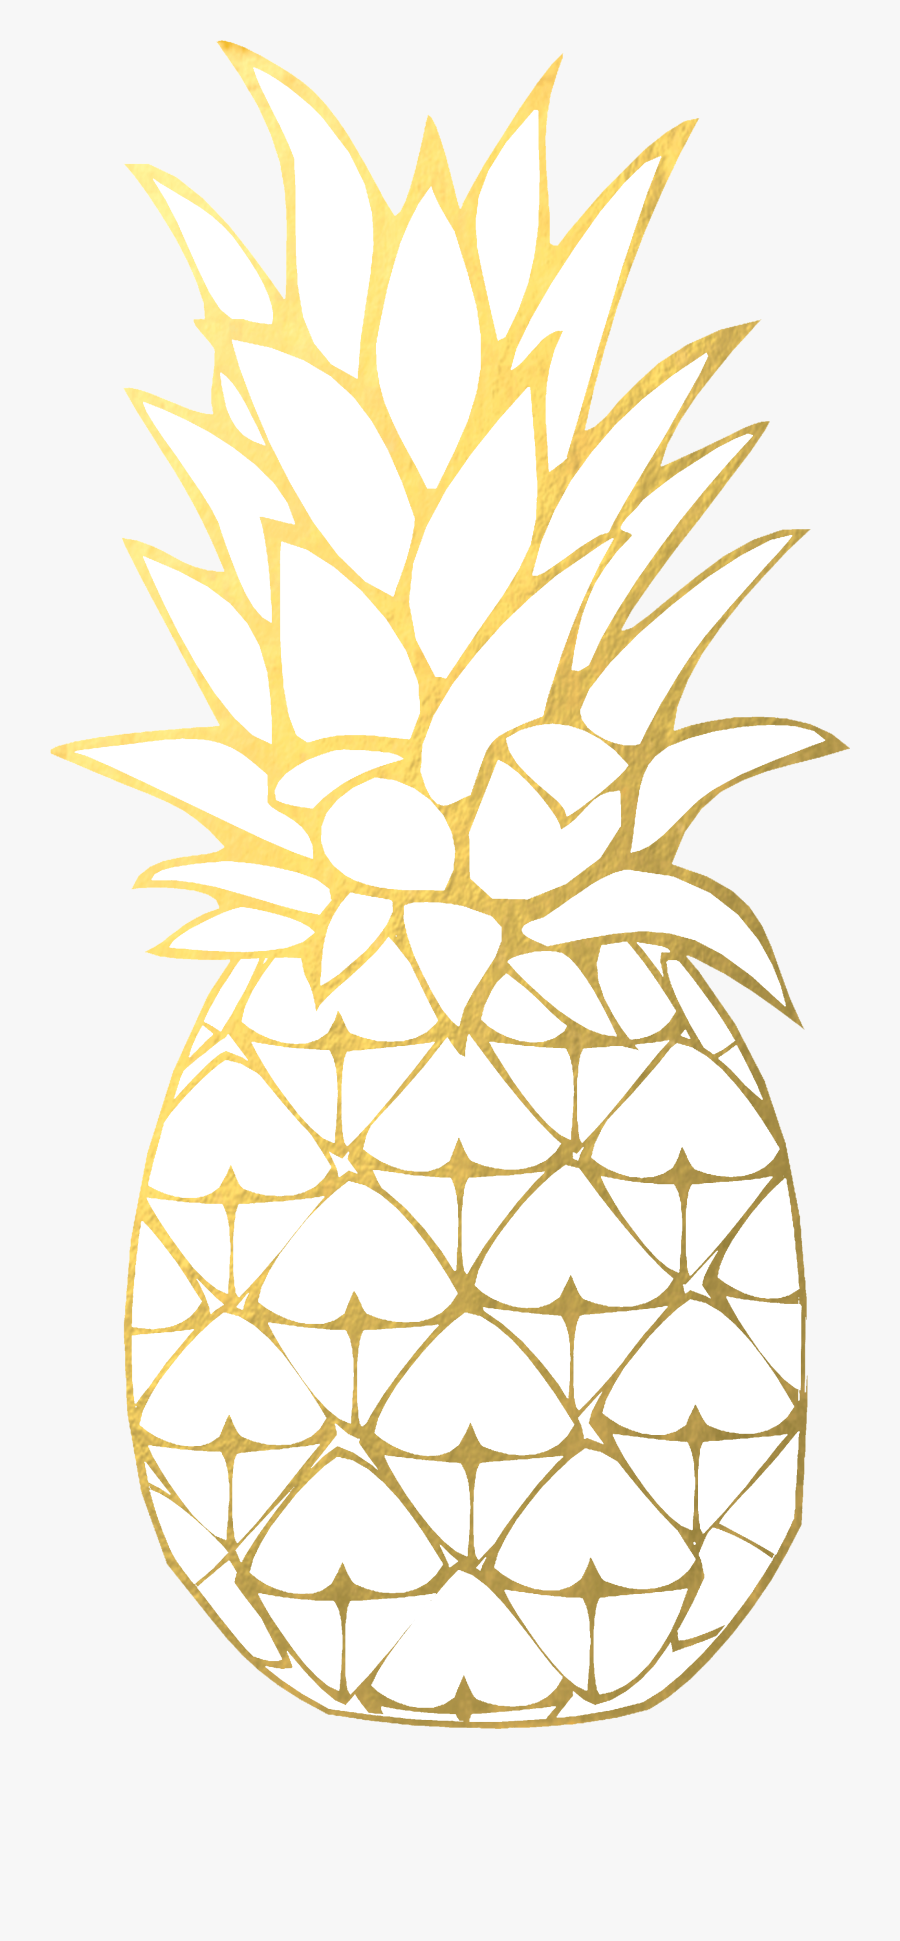 Pineapple Clipart Gold Pineapple - Transparent Background Gold Pineapple, Transparent Clipart